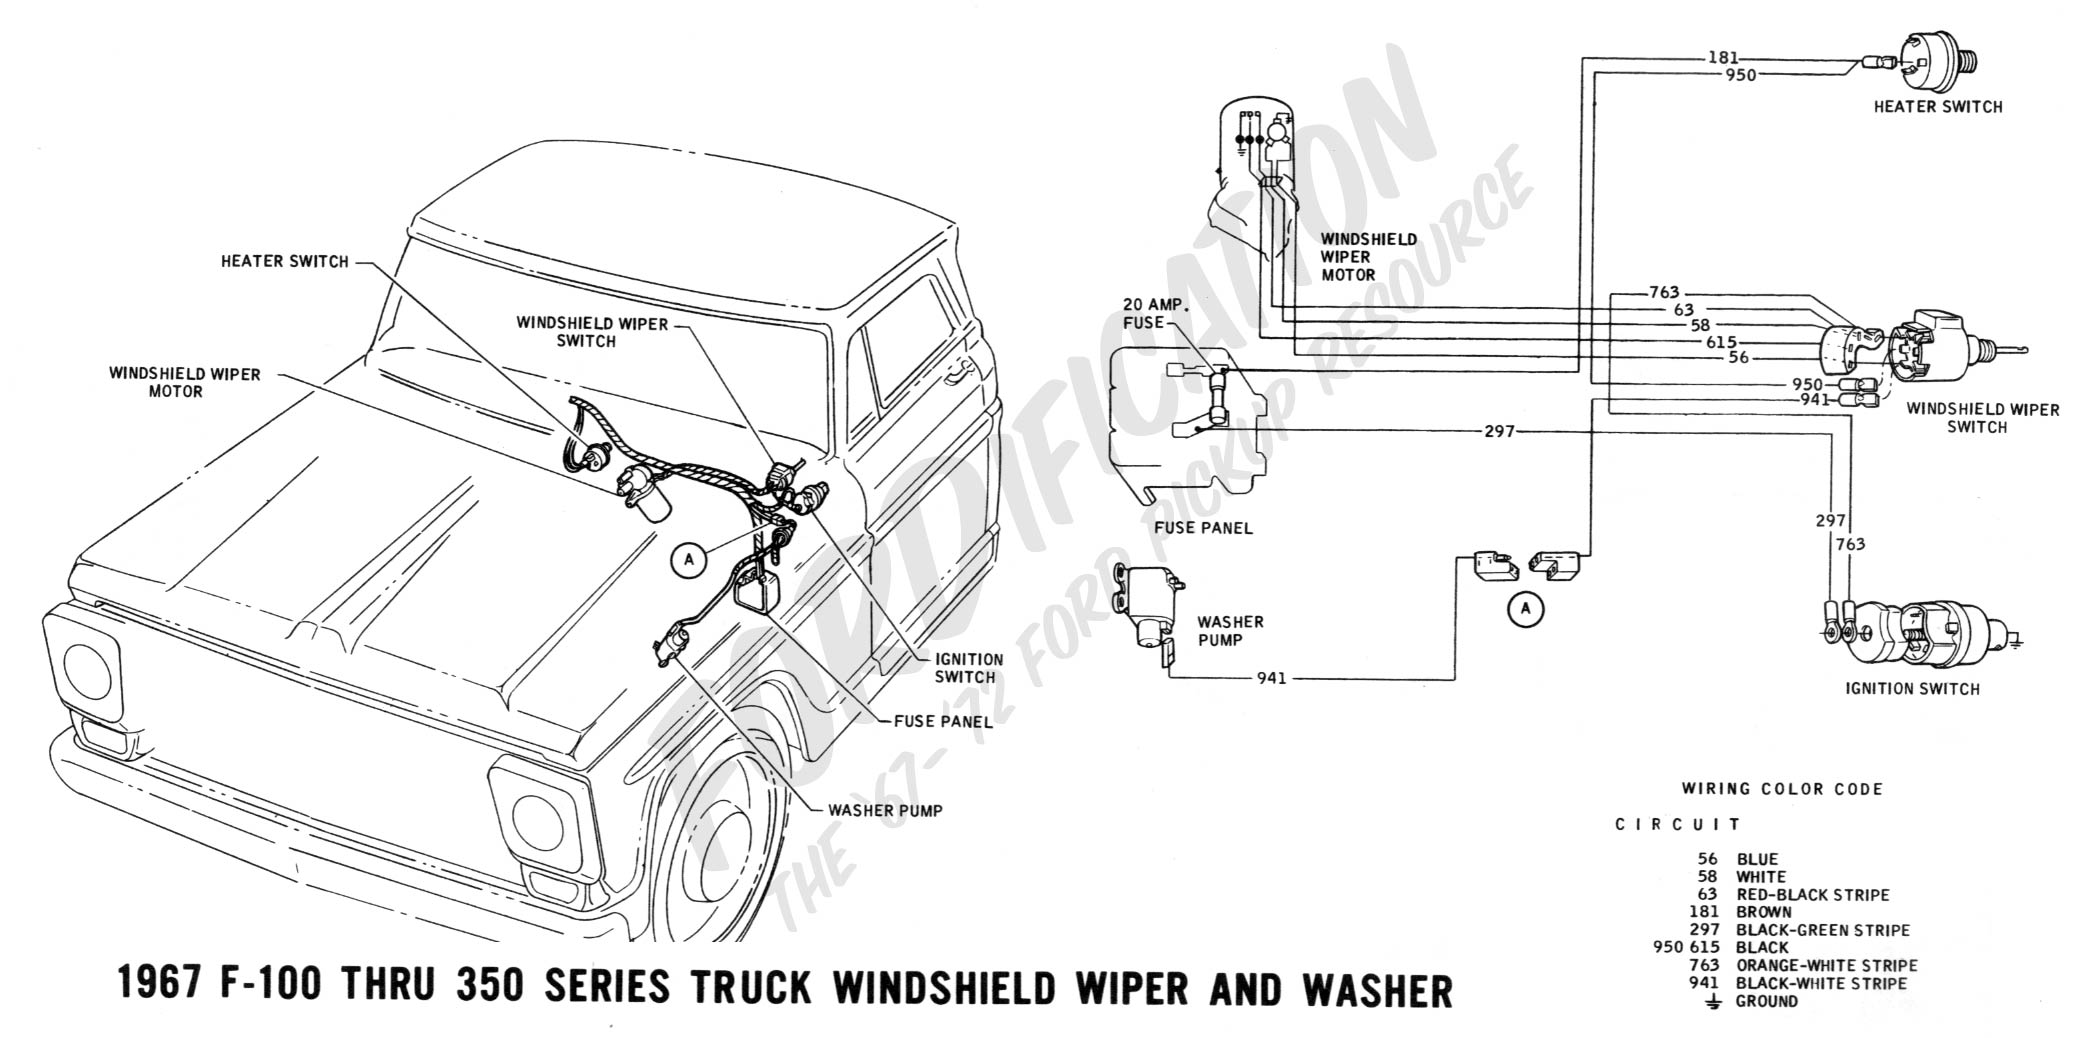 wiring 1967wipers ford truck technical drawings and schematics section h wiring 1999 ford explorer rear wiper wiring diagram at mifinder.co